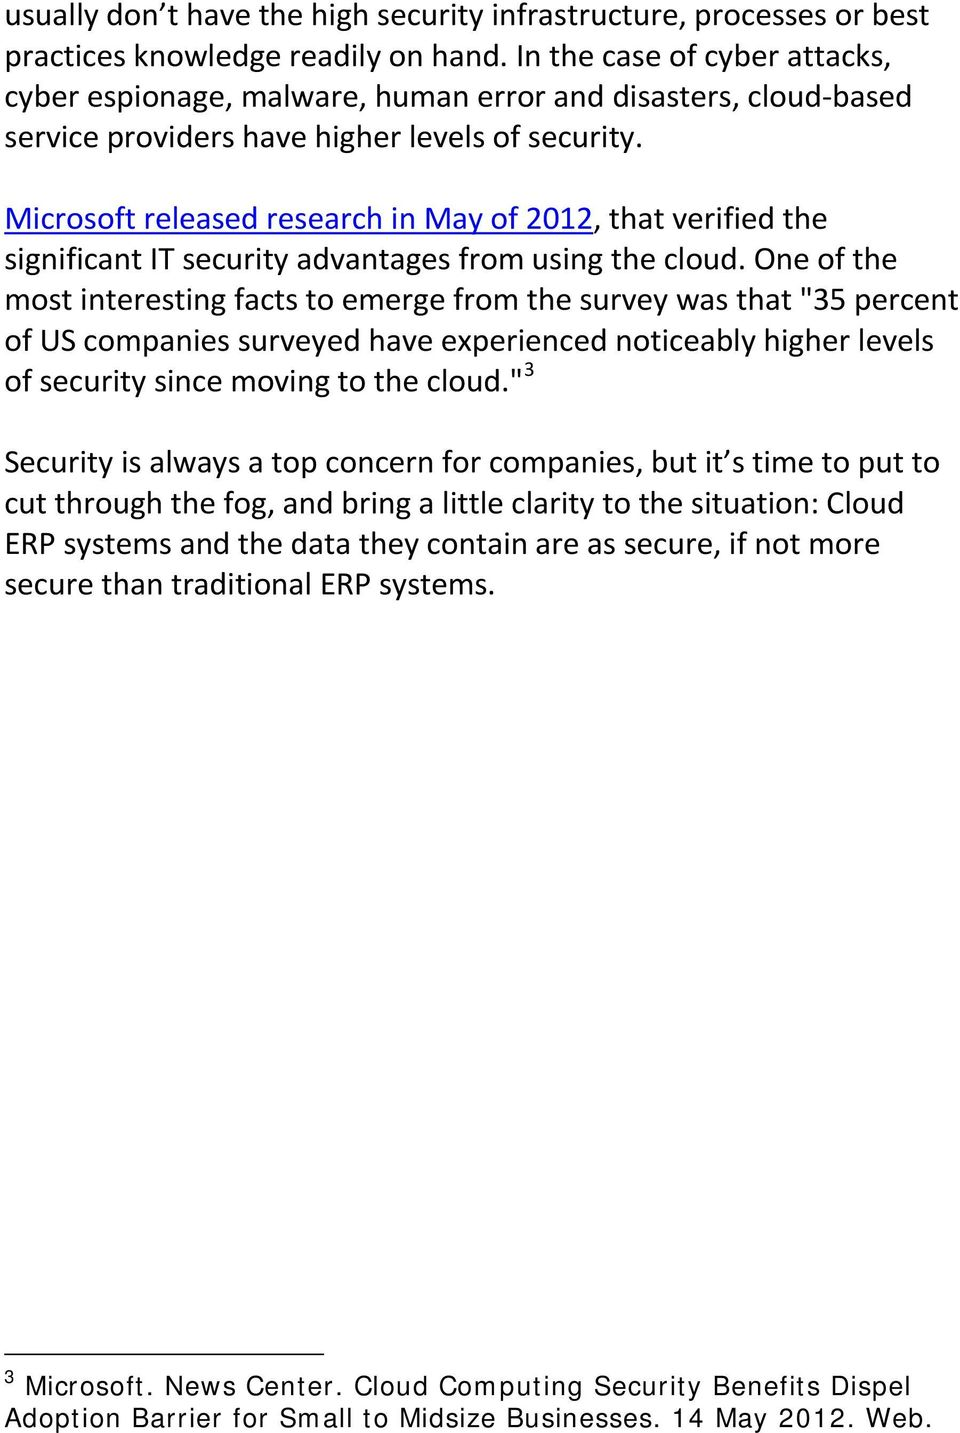 Microsoft released research in May of 2012, that verified the significant IT security advantages from using the cloud.